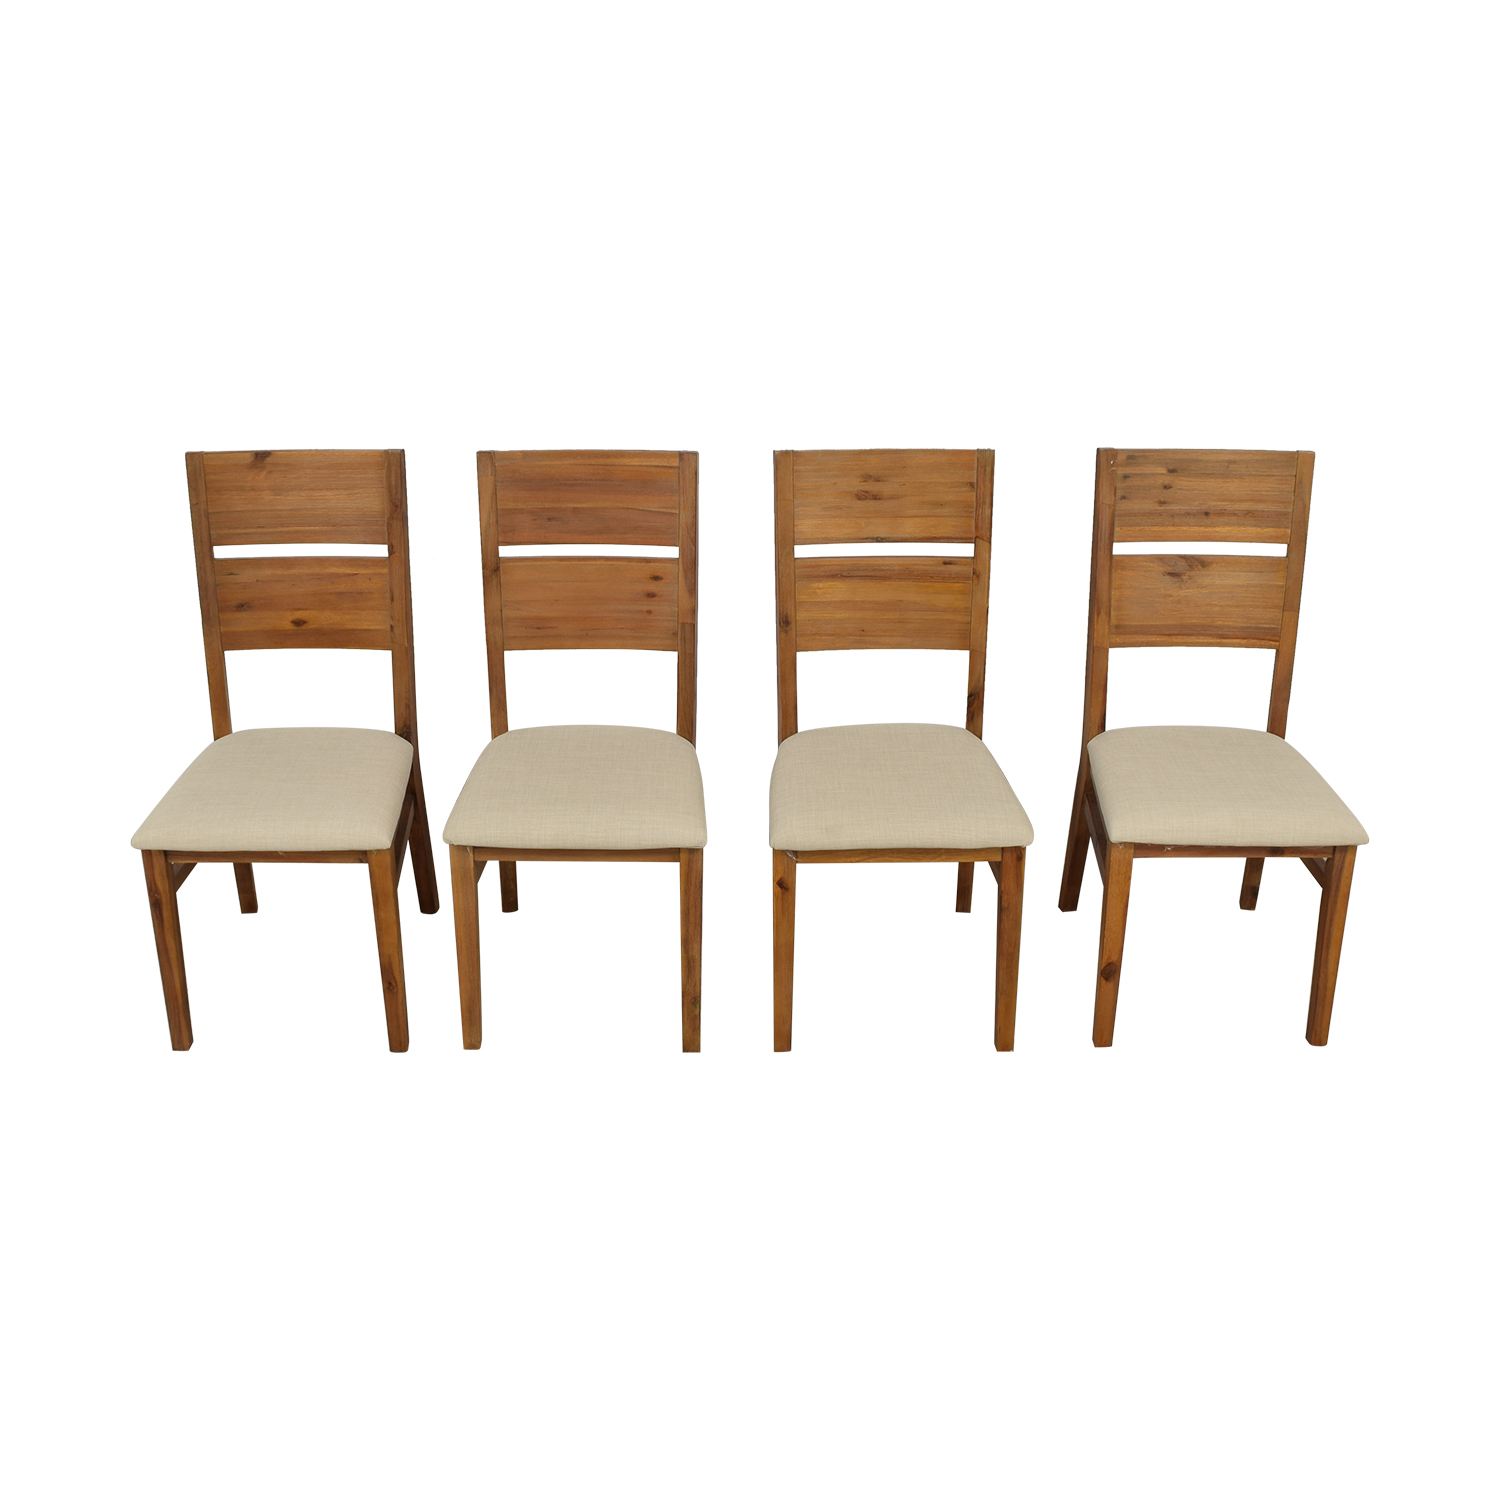 Macy's Macy's Dining Chairs for sale